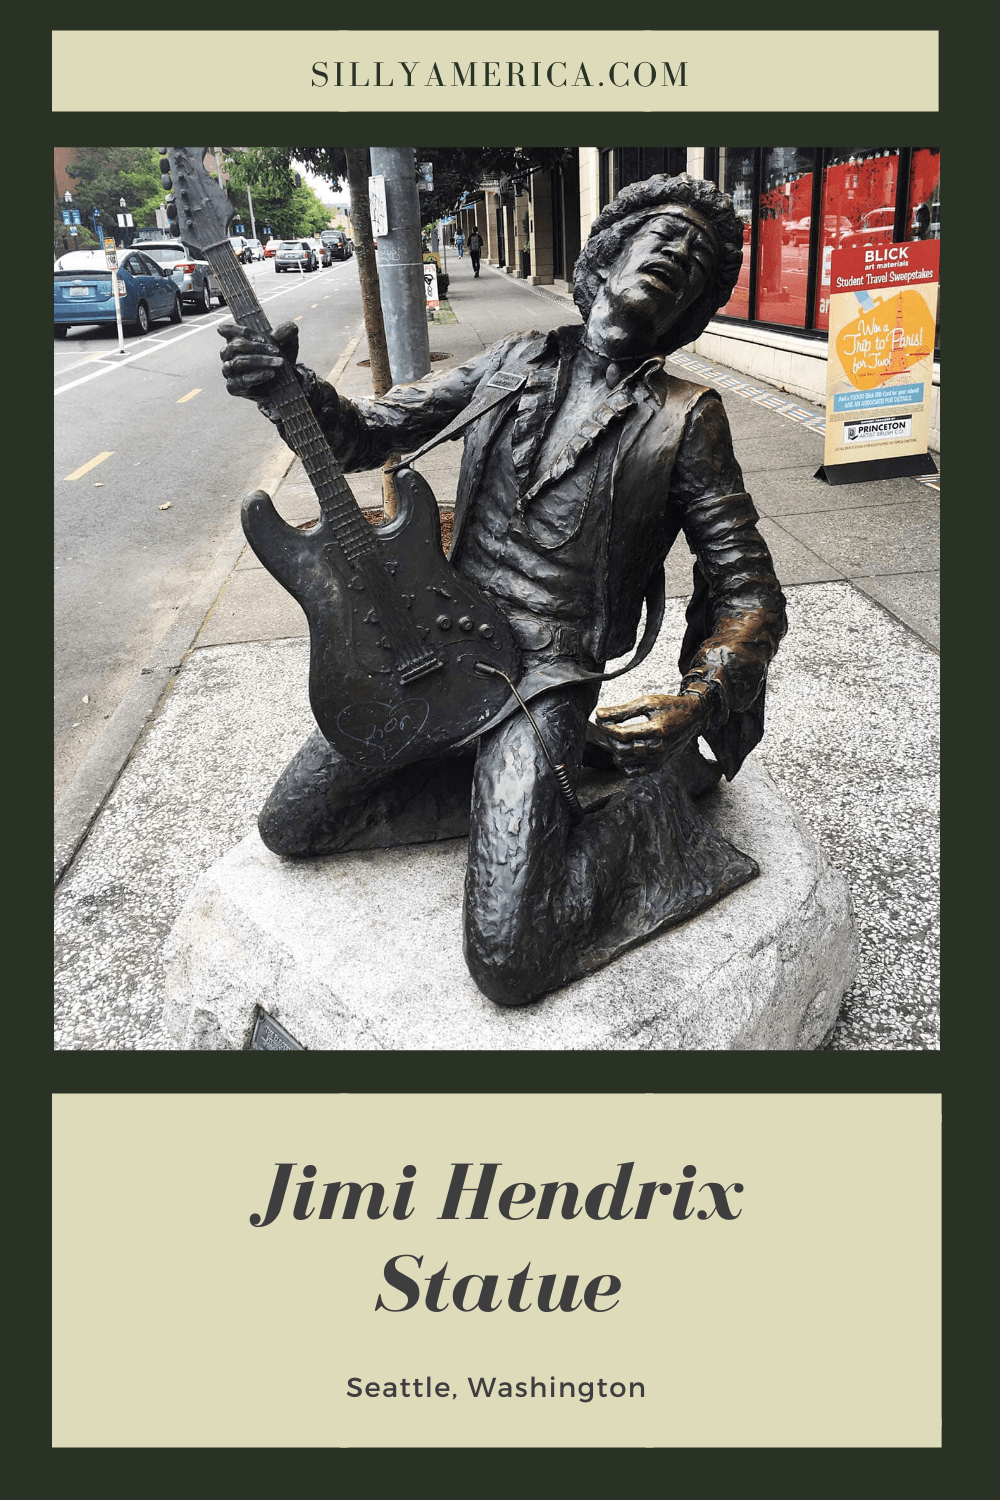 The Electric Lady Studio Guitar - the bronze Jimi Hendrix Statue in Seattle, Washington was unveiled in 1997 as a tribute to the guitarist and rock legend. Visit this Seattle tourist attraction for photography ops on a Washington road trip or Seattle vacation. #WashingtonRoadsideAttractions #WashingtonRoadsideAttraction #RoadsideAttractions #RoadsideAttraction #RoadTrip #WashingtonRoadTrip #WashingtonRoadTripMap #WashingtonRoadTripBucketLists #WashingtonBucketList #SeattleRoadTrip